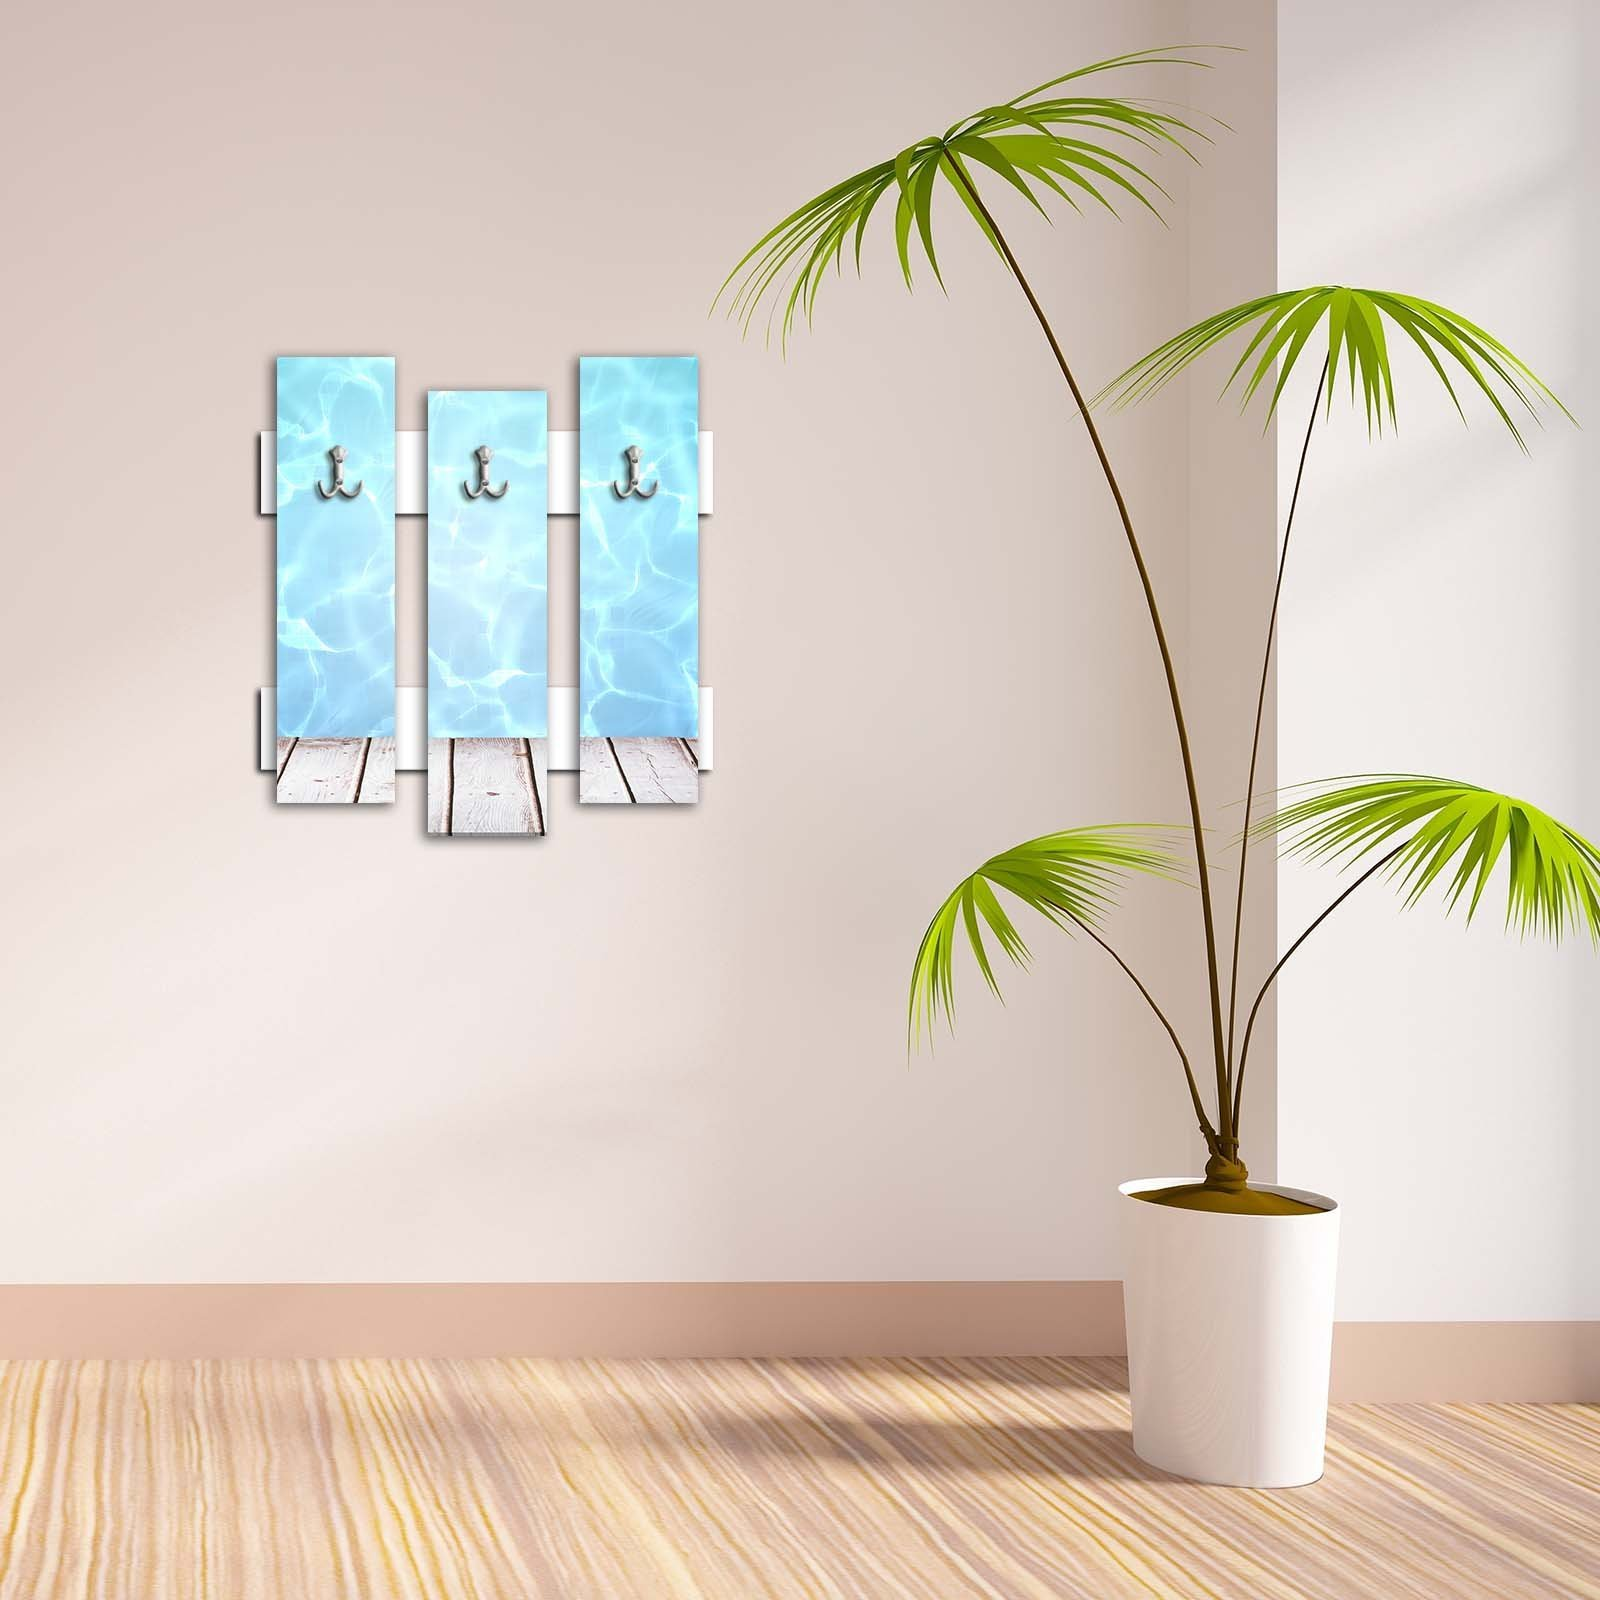 Decorative Wall Hook 3 Pcs Metal Key Holder 100% MDF Mounted Hanging Home Decor, Perfect for Foyers Entryway, Door Coats Hats Towels Scarfs Bags Pier Sea Water Holiday Seaside Wave Design Blue